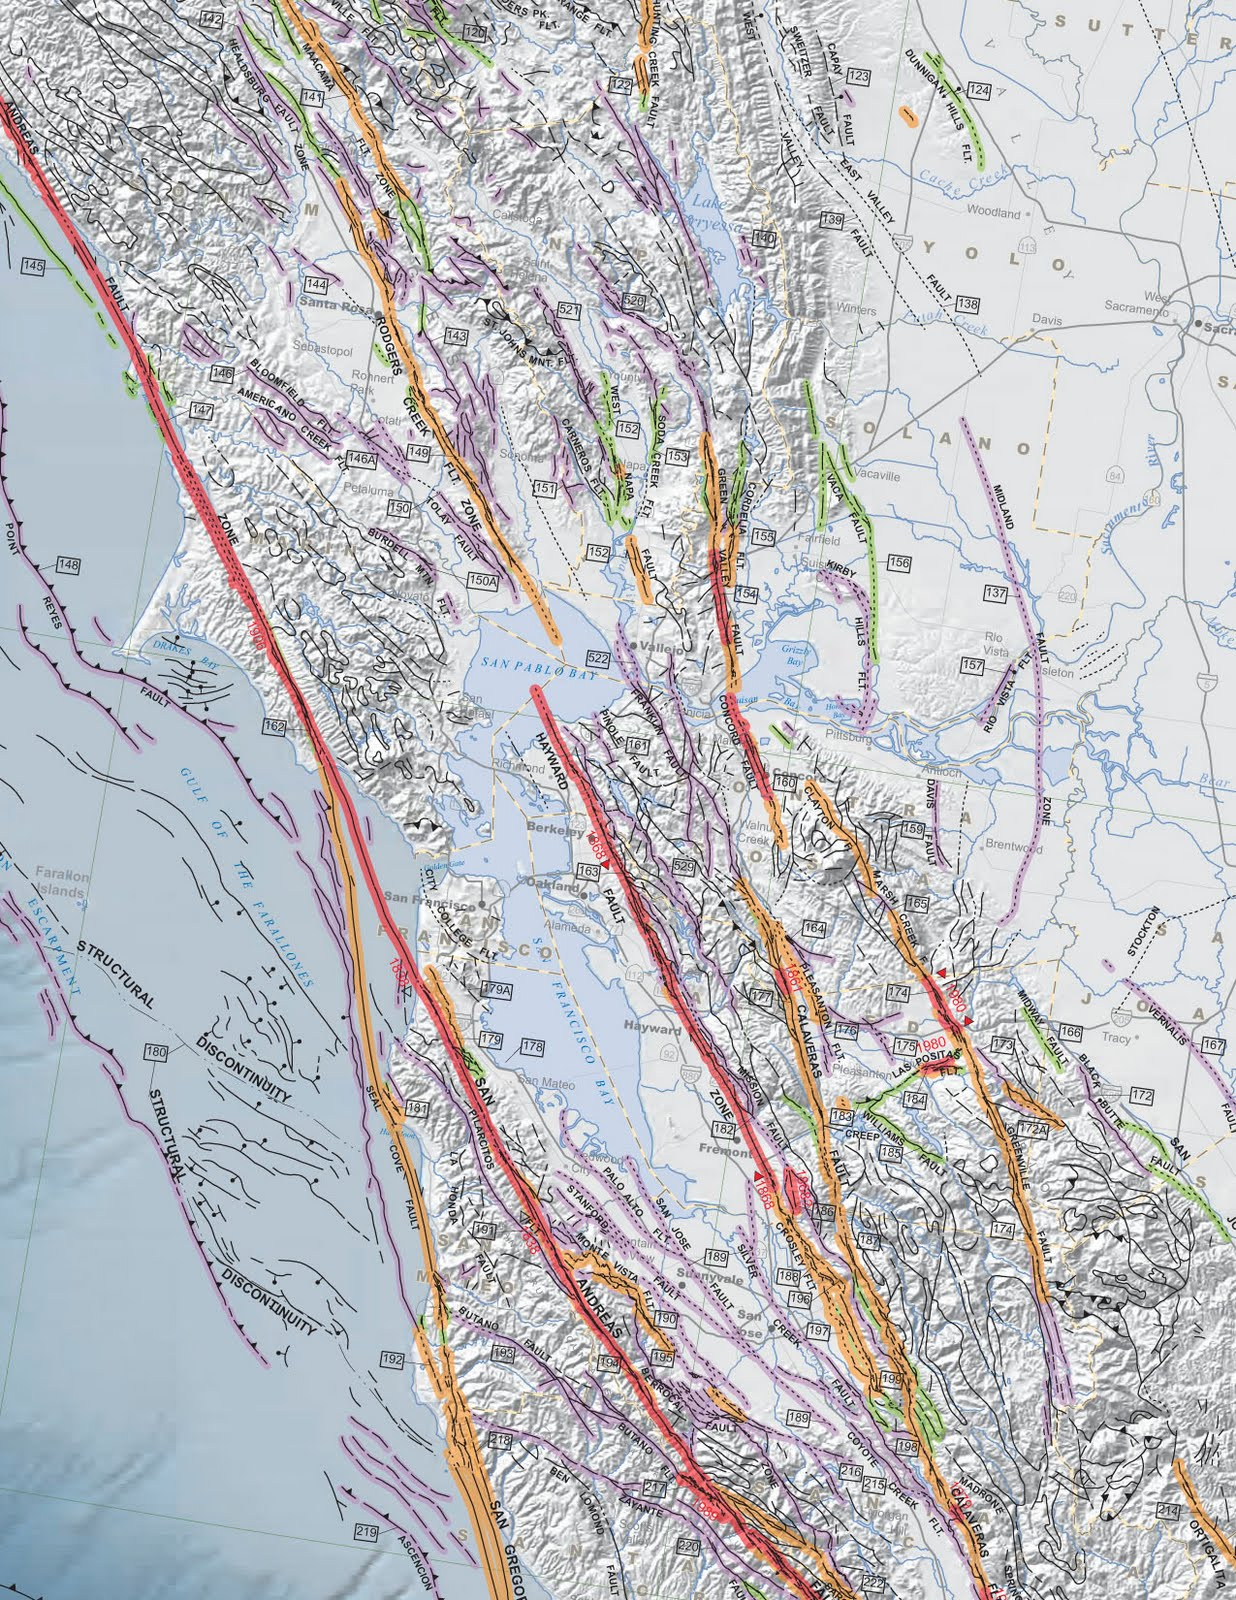 State Geologists News Media Lauds California39s New Fault Map